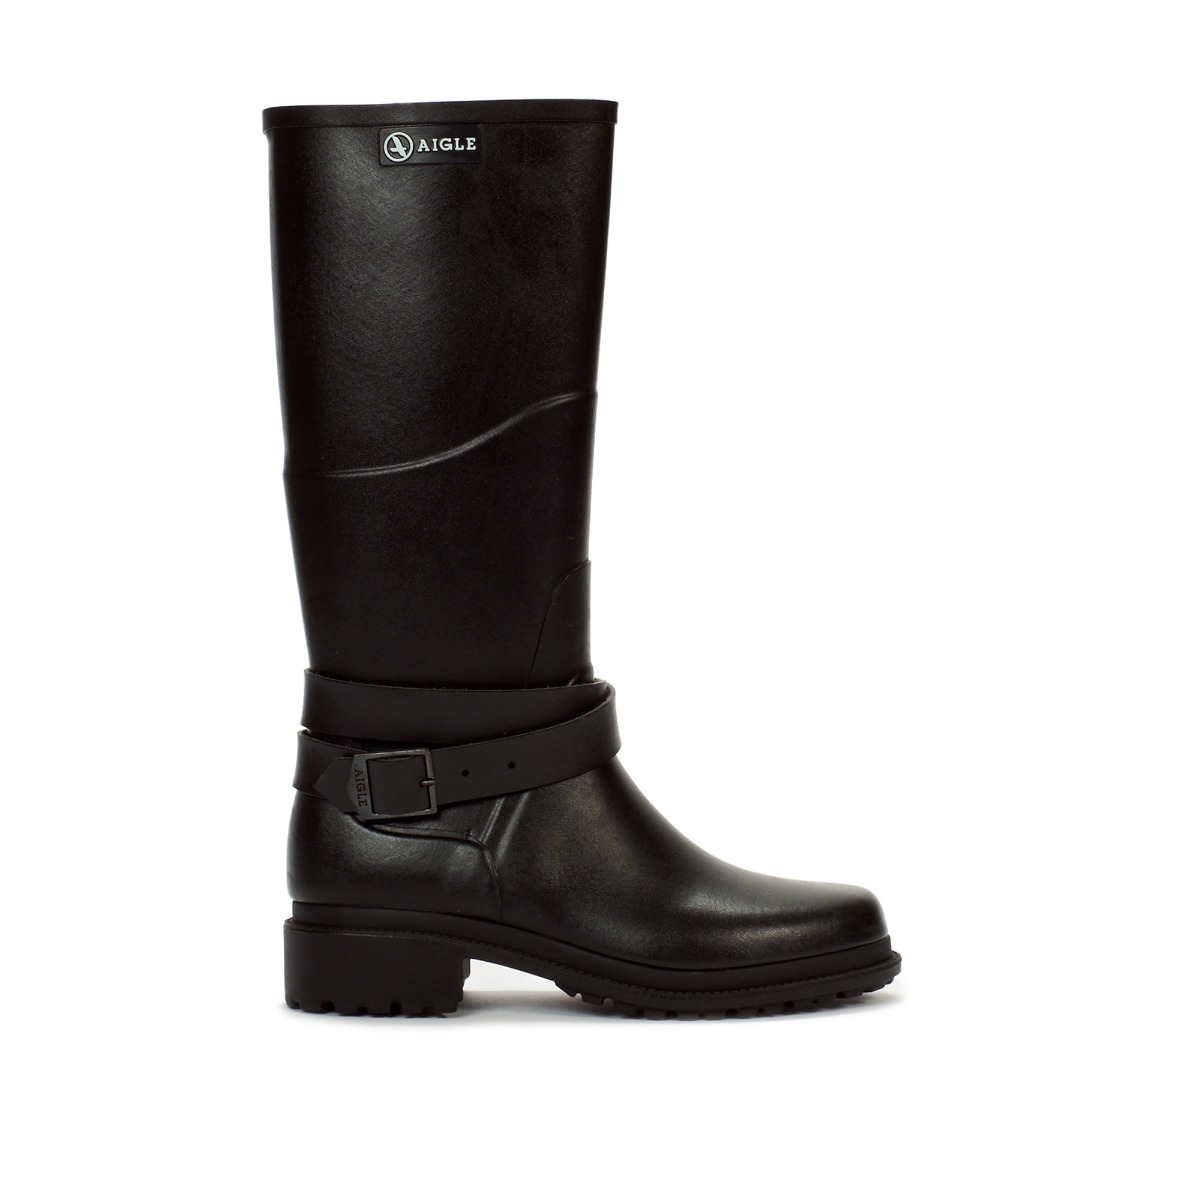 ... to personal style, MACADAMES is available in different length for all  types of occasions and weather: high boots, mid-high boots and ankle boots.